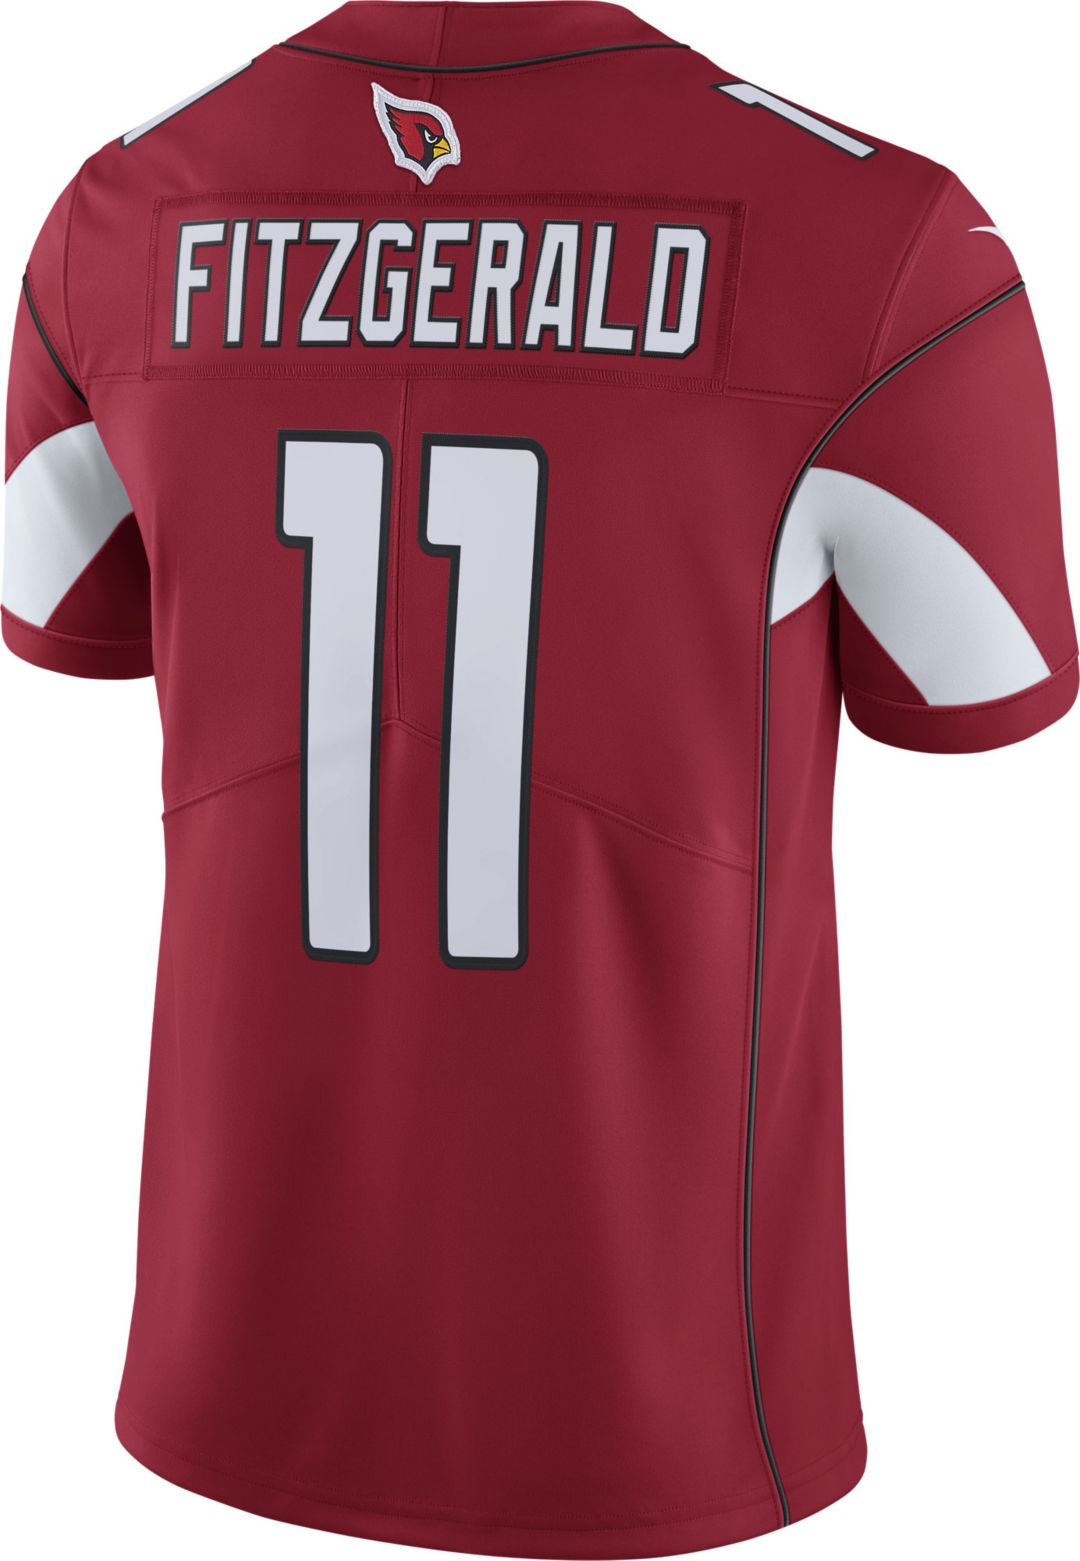 686ed3116 ... Jersey Arizona Cardinals Larry Fitzgerald #11. noImageFound. Previous.  1. 2. 3